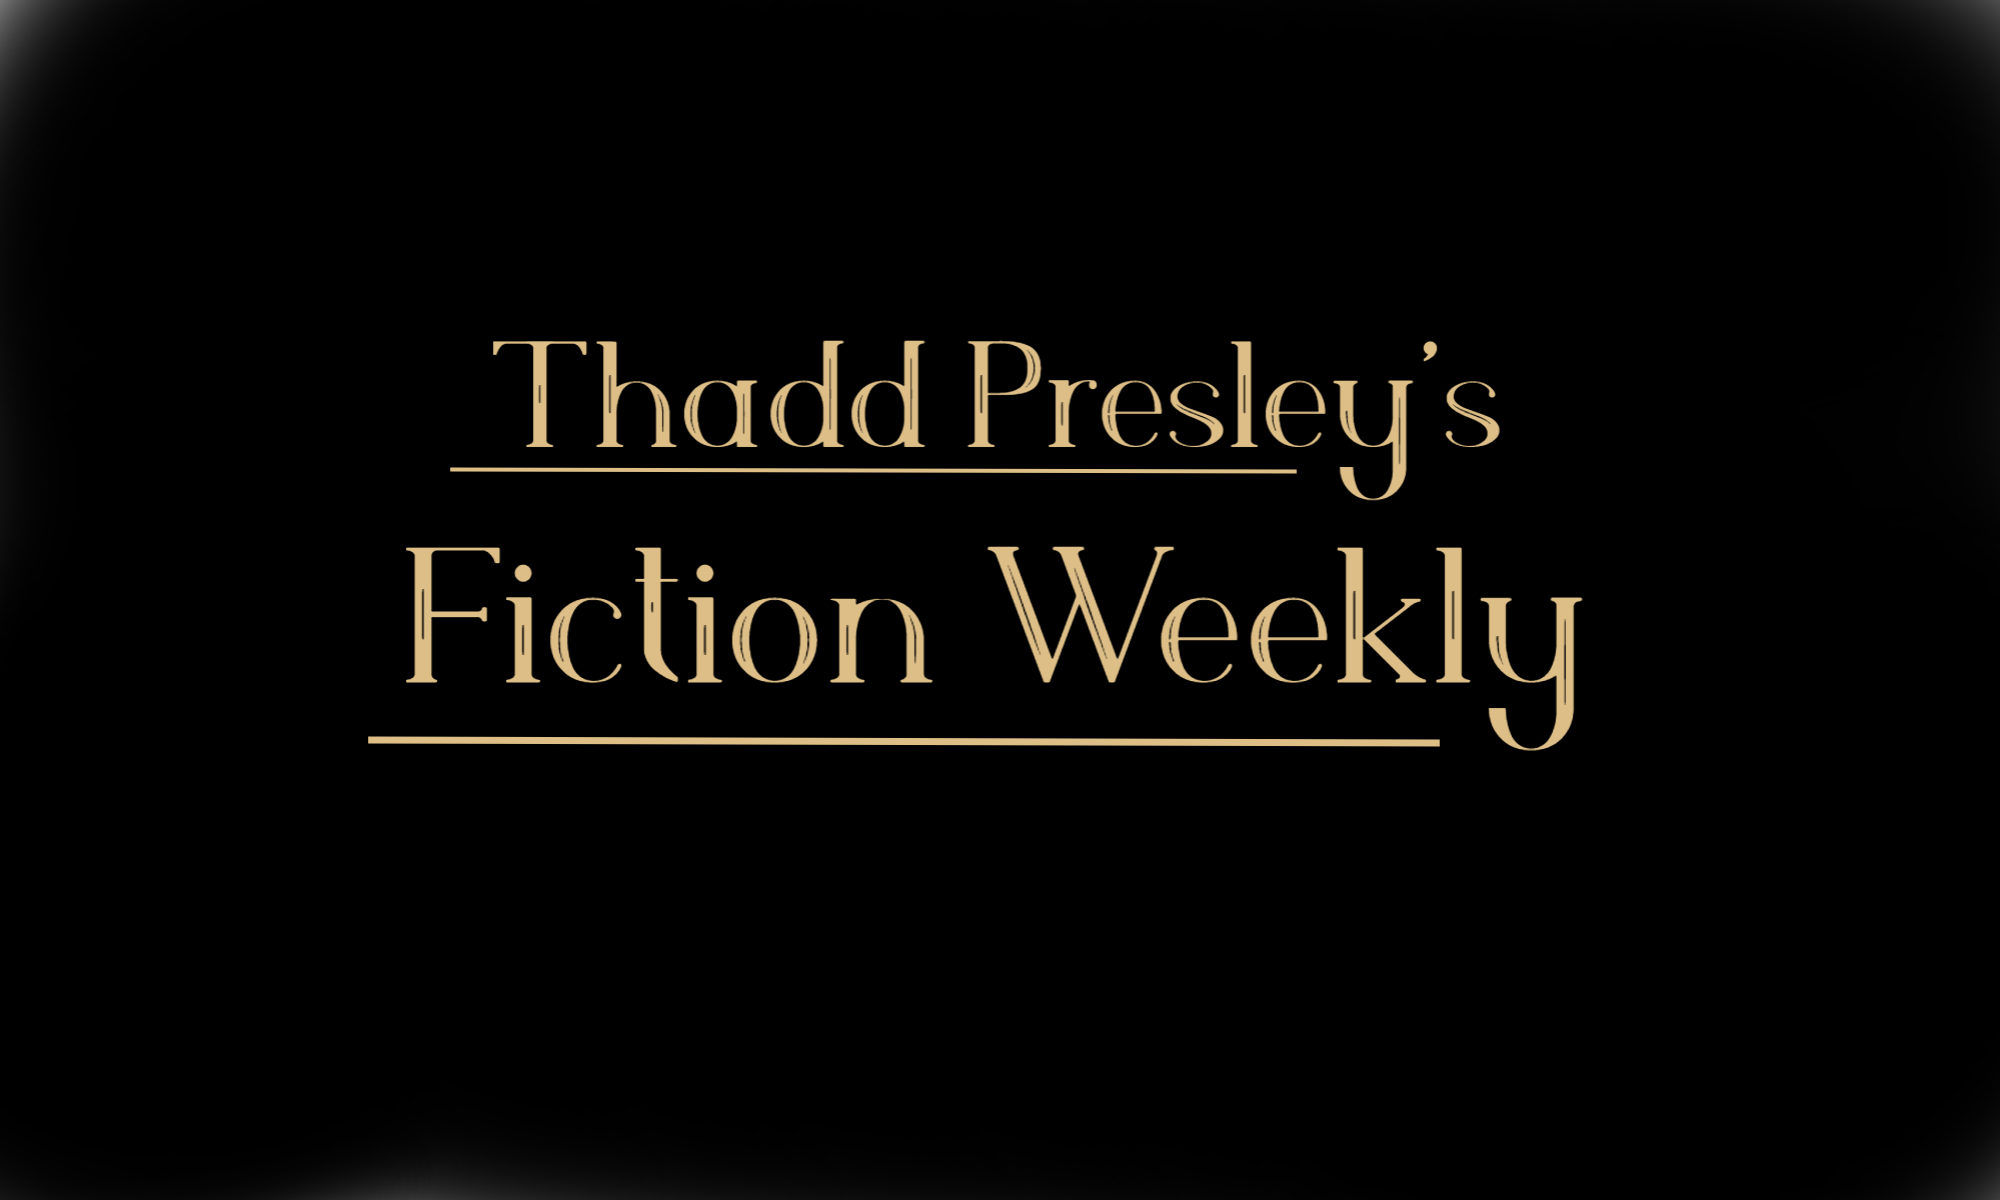 Fiction Weekly